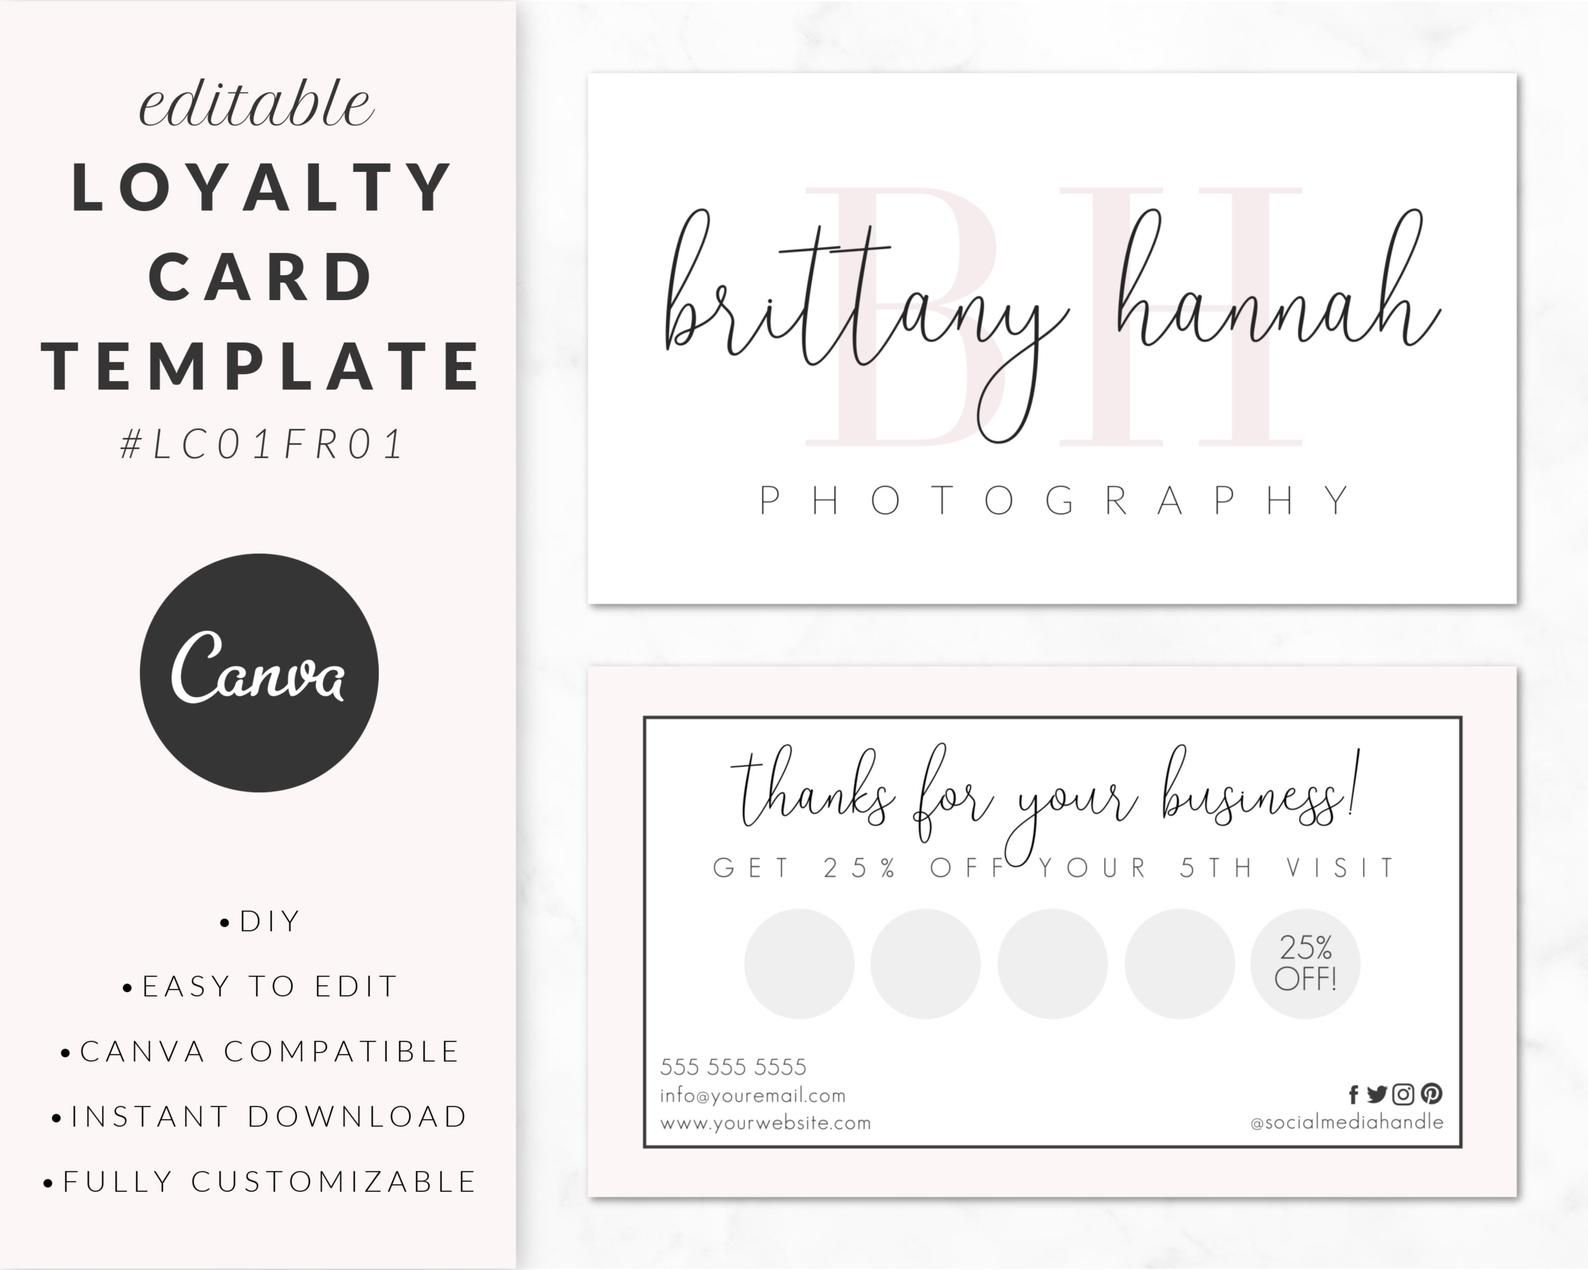 Loyalty Card Template For Canva Business Card Design Printable Diy Customizable Editable Instant Download Branding Lc01fr01 In 2021 Loyalty Card Template Loyalty Card Design Business Card Design